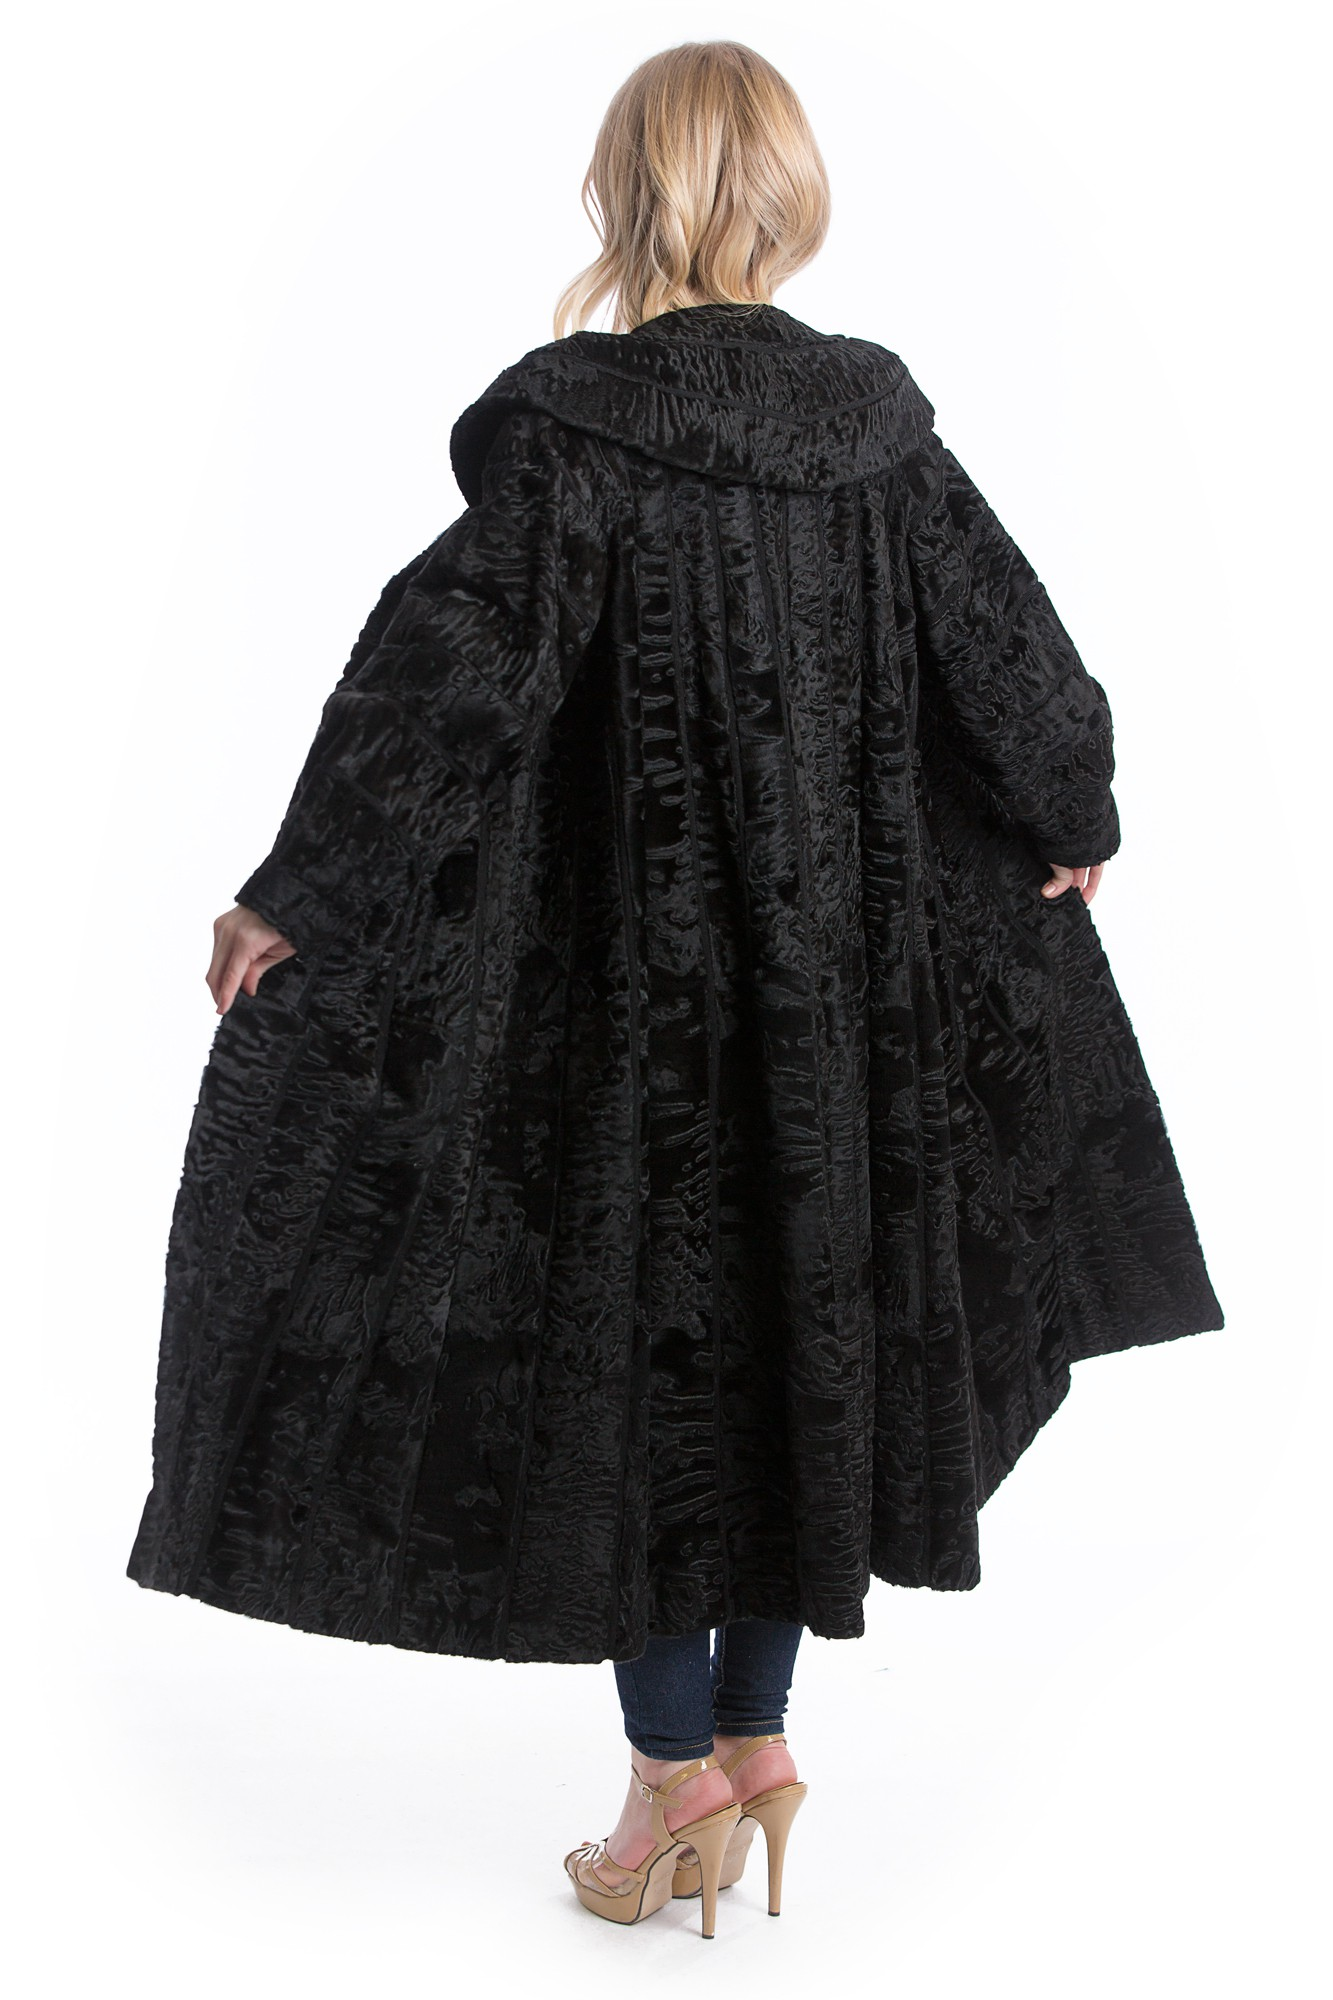 Buy Swakara Astrakhan Coat Black Leather Style Fur Fashion